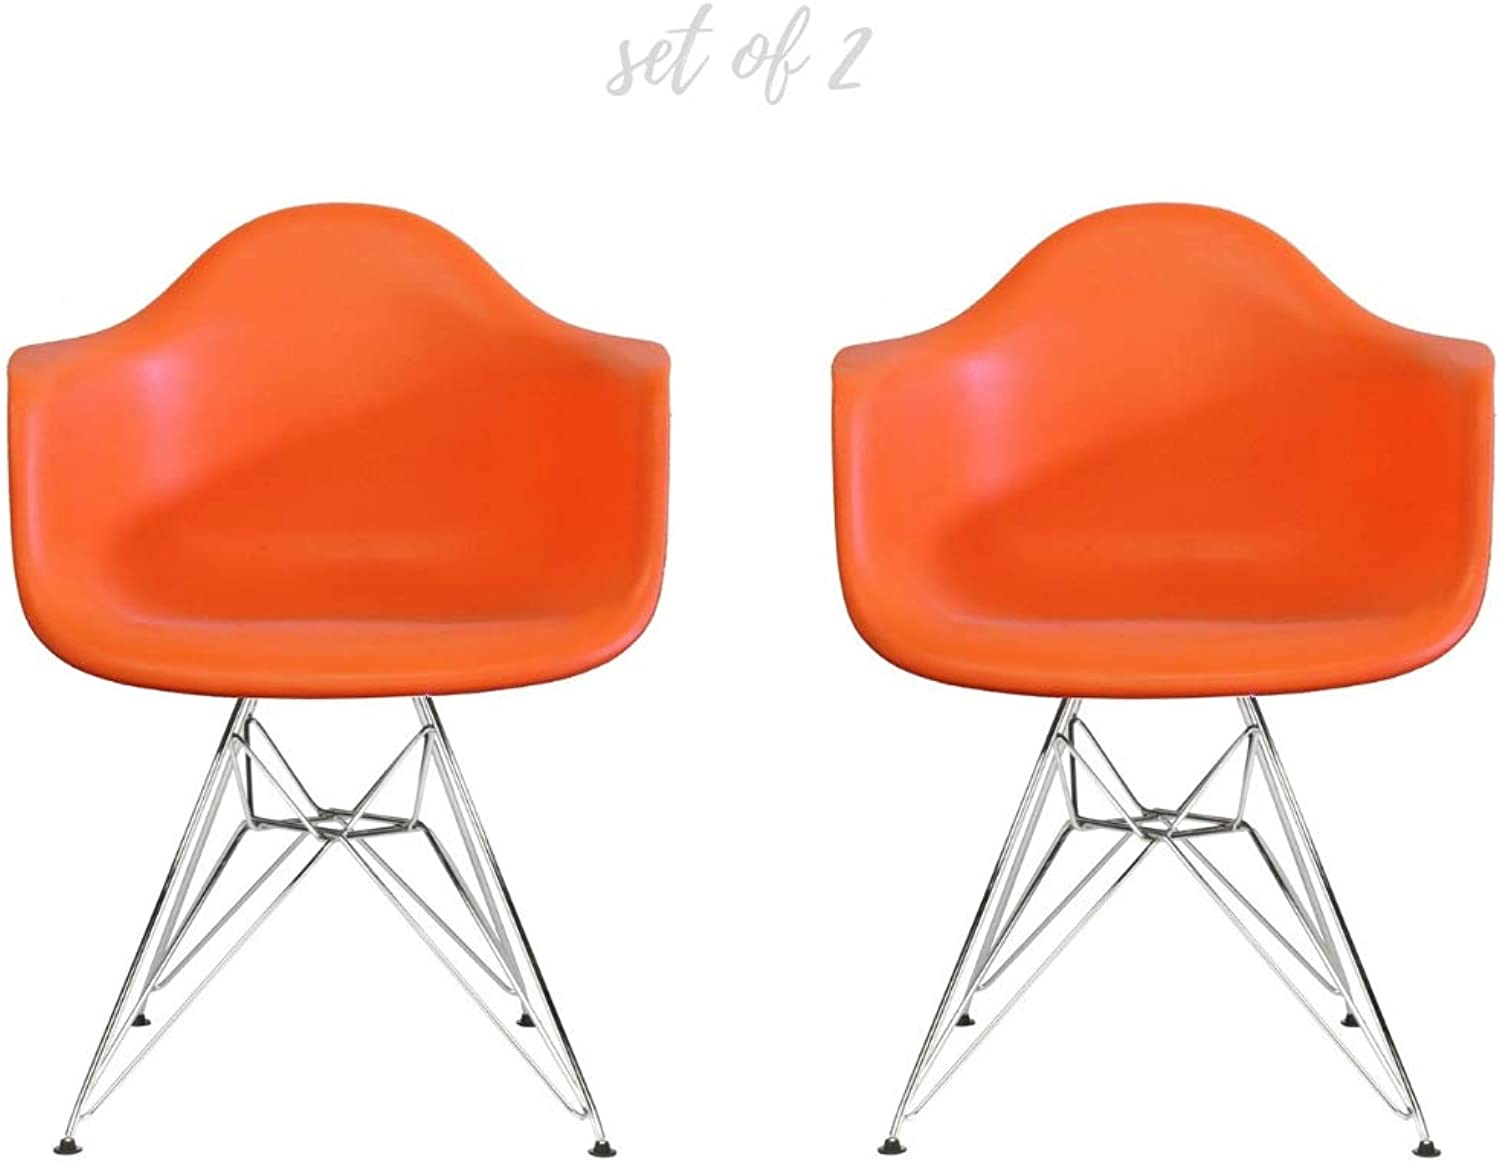 Take Me Home Furniture Eiffel Style Bucket Chair with Chrome Legs, orange, Set of 2, Dining Chair